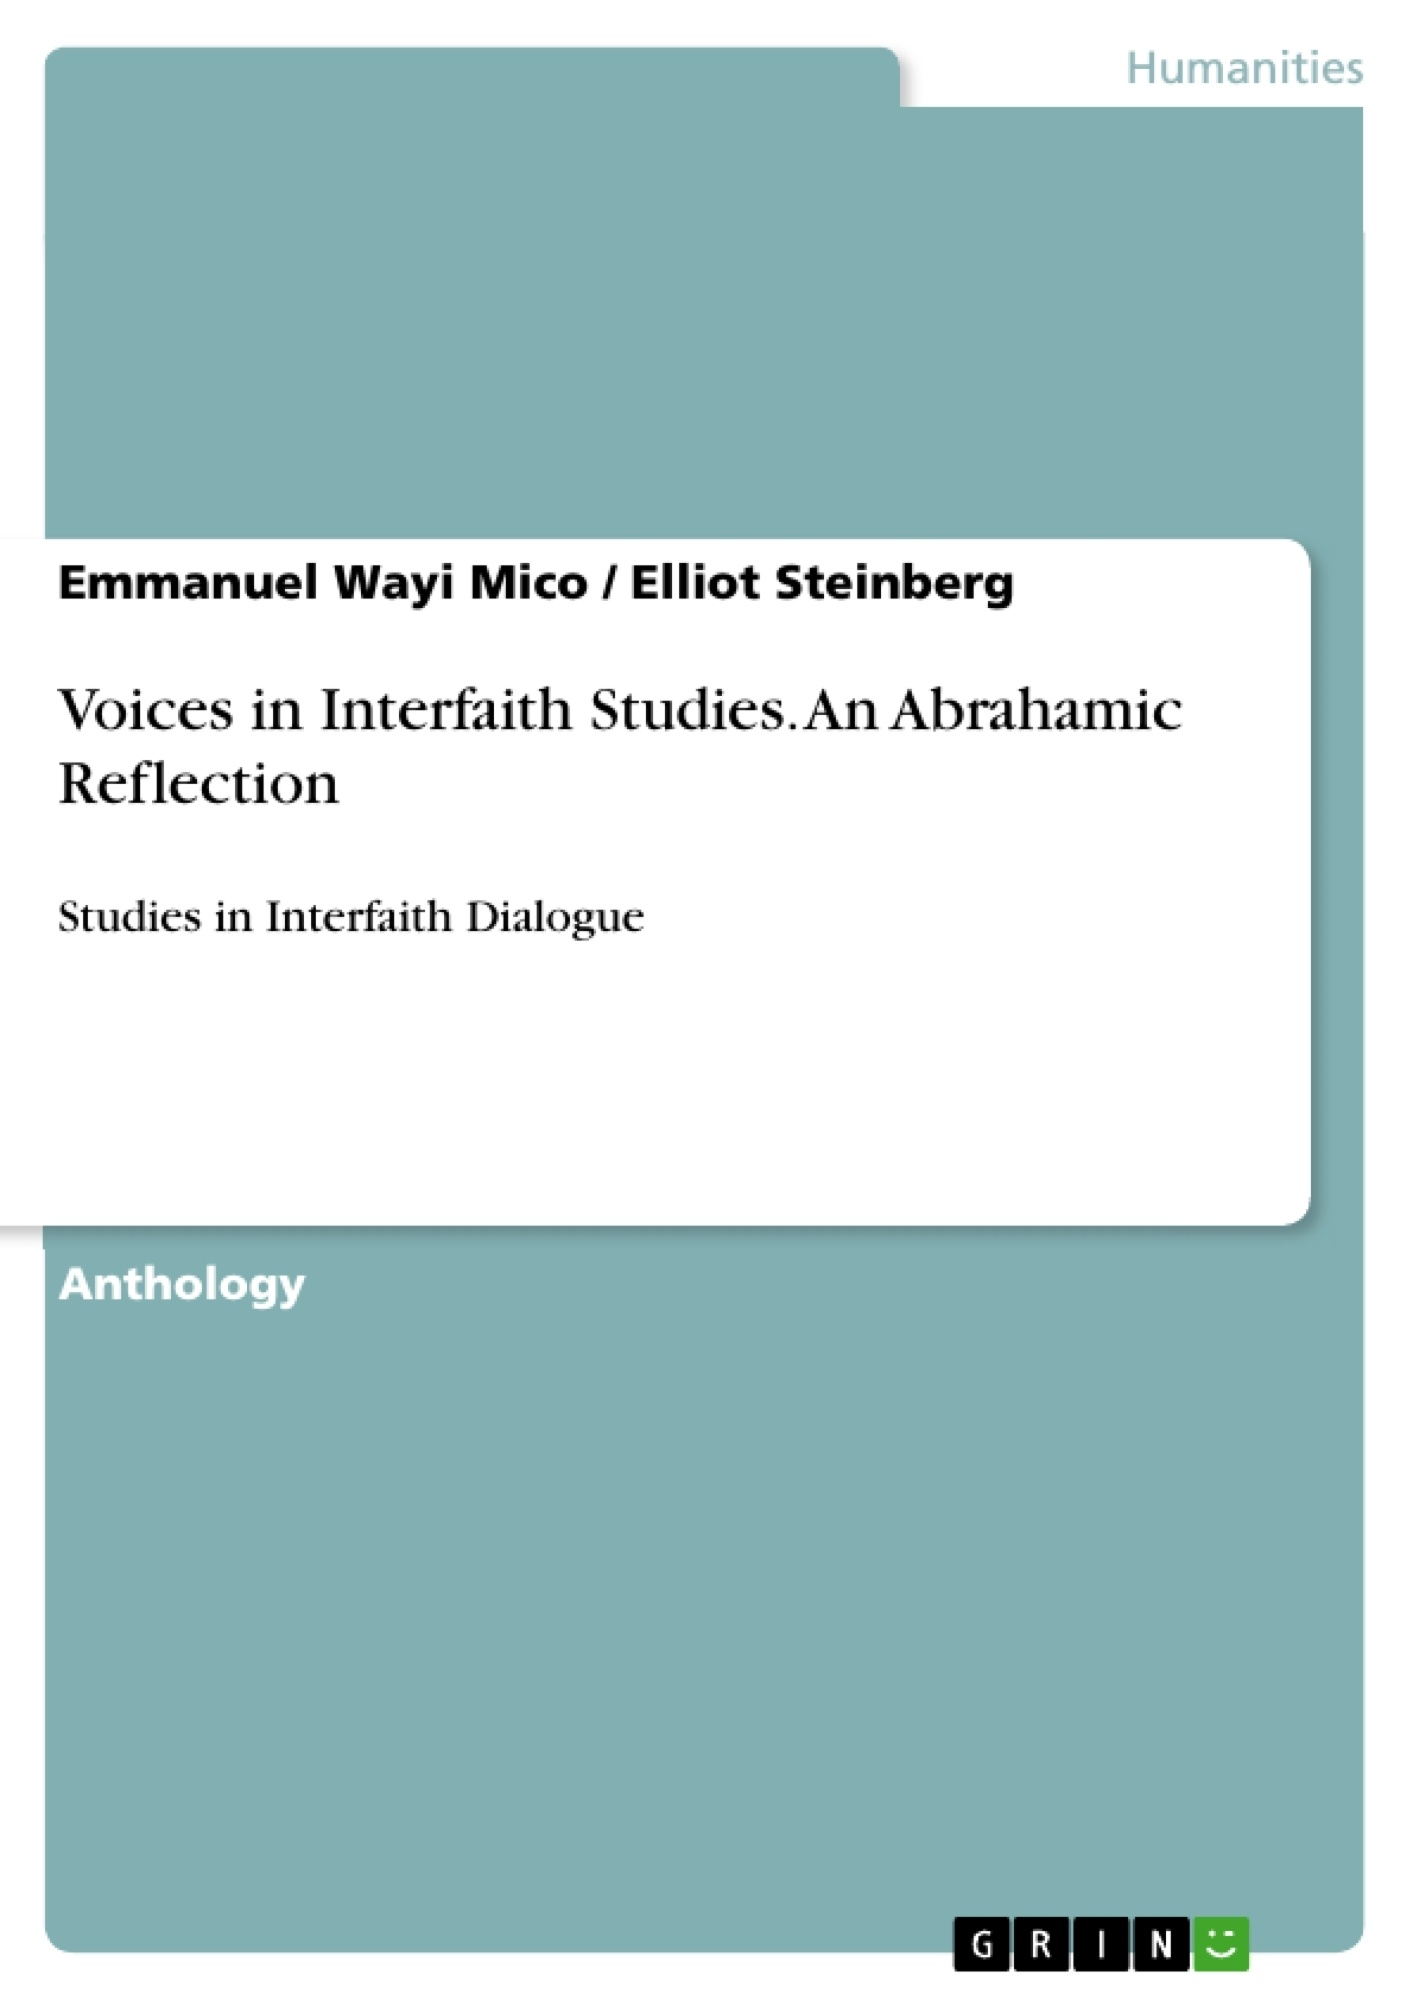 Title: Voices in Interfaith Studies. An Abrahamic Reflection